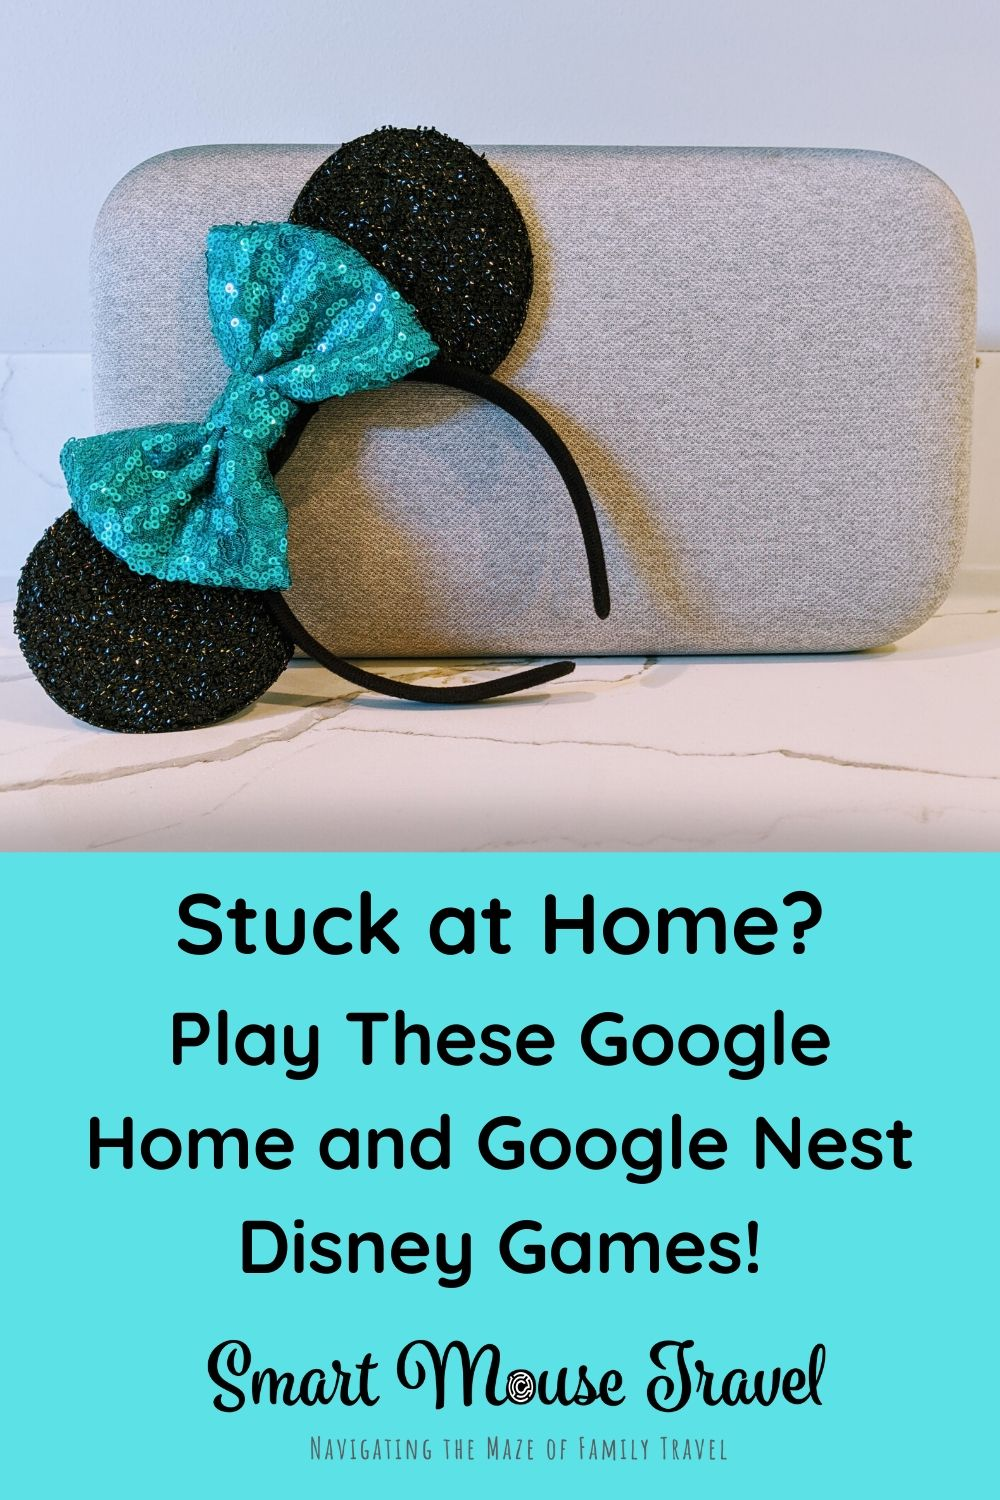 Google Home and Google Nest Mini Disney games are a great way to fight at home boredom. Find out more about these fun Disney games you can play with Google. #disneygames #bored #googlehome #googlenest